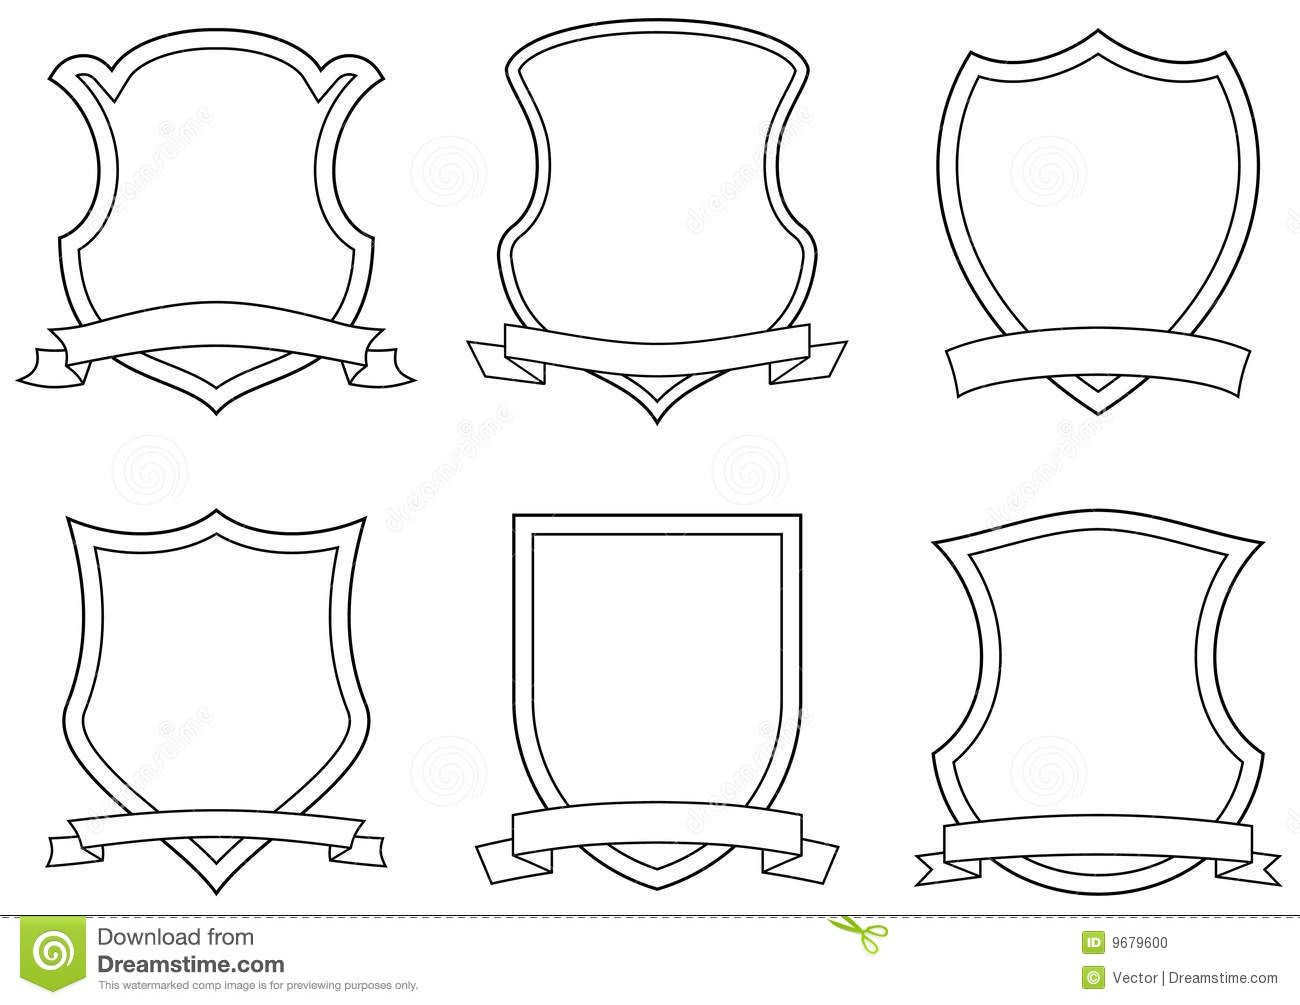 Coat of arms recherche google coats of arms for Make your own coat of arms template